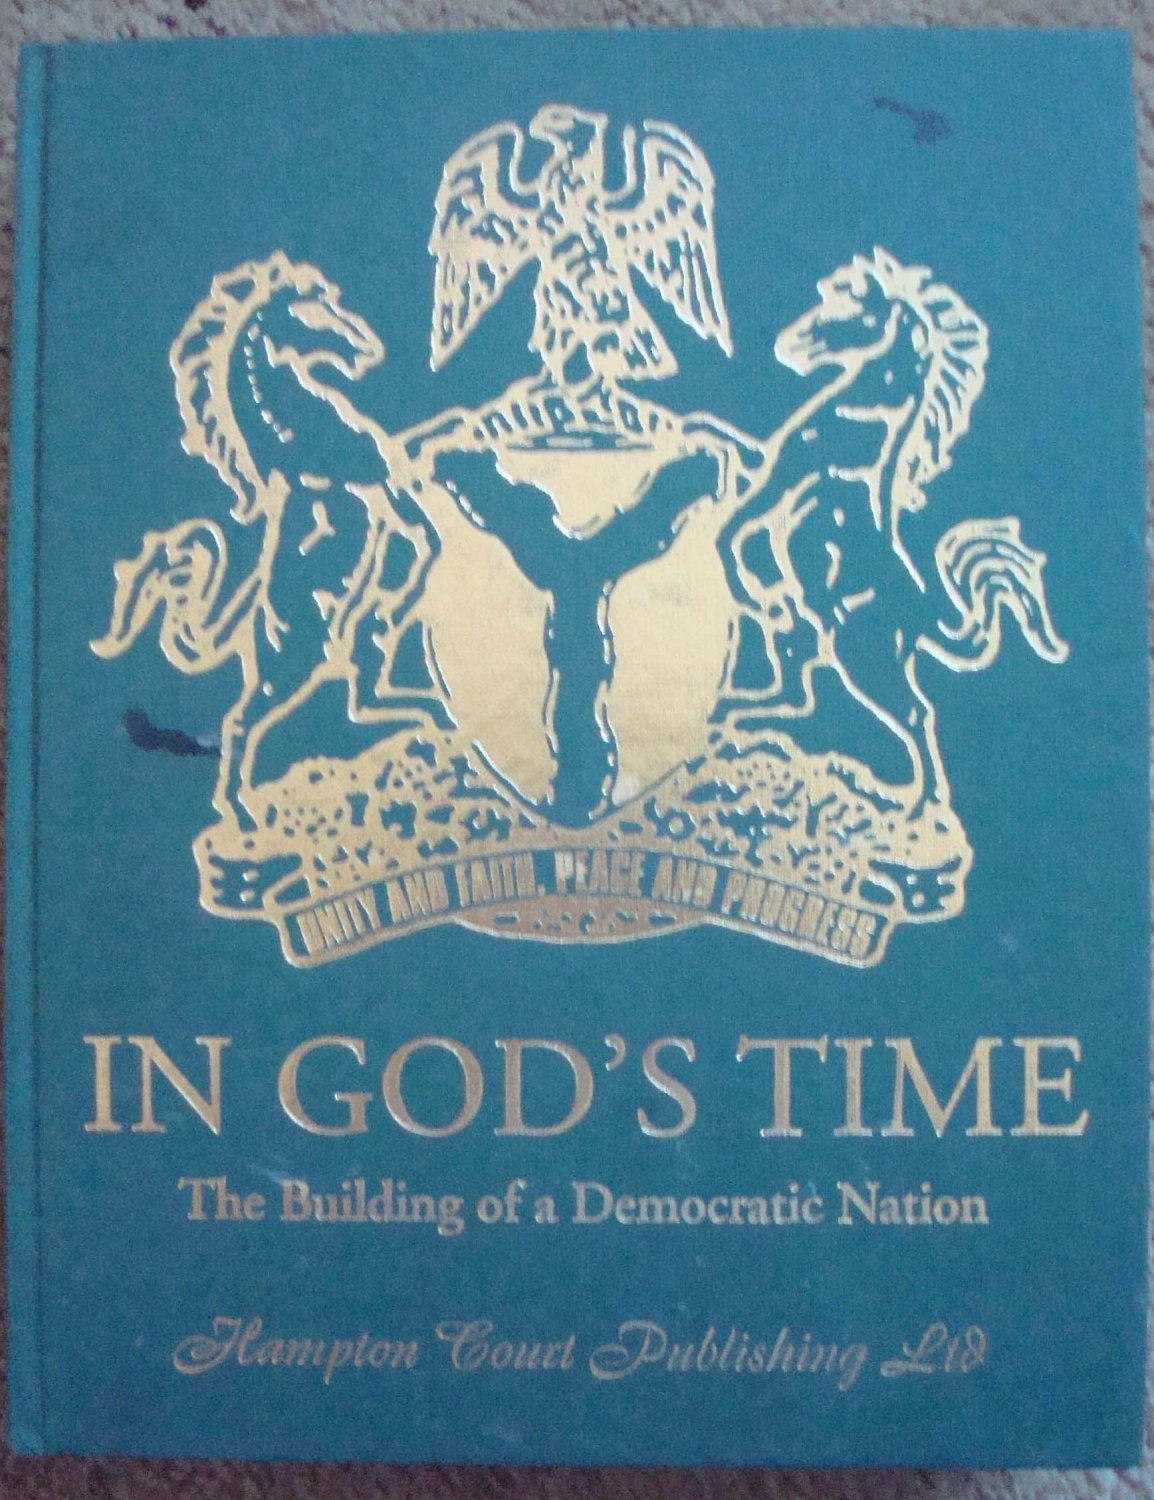 In God's Time: The Building of a Democratic Nation